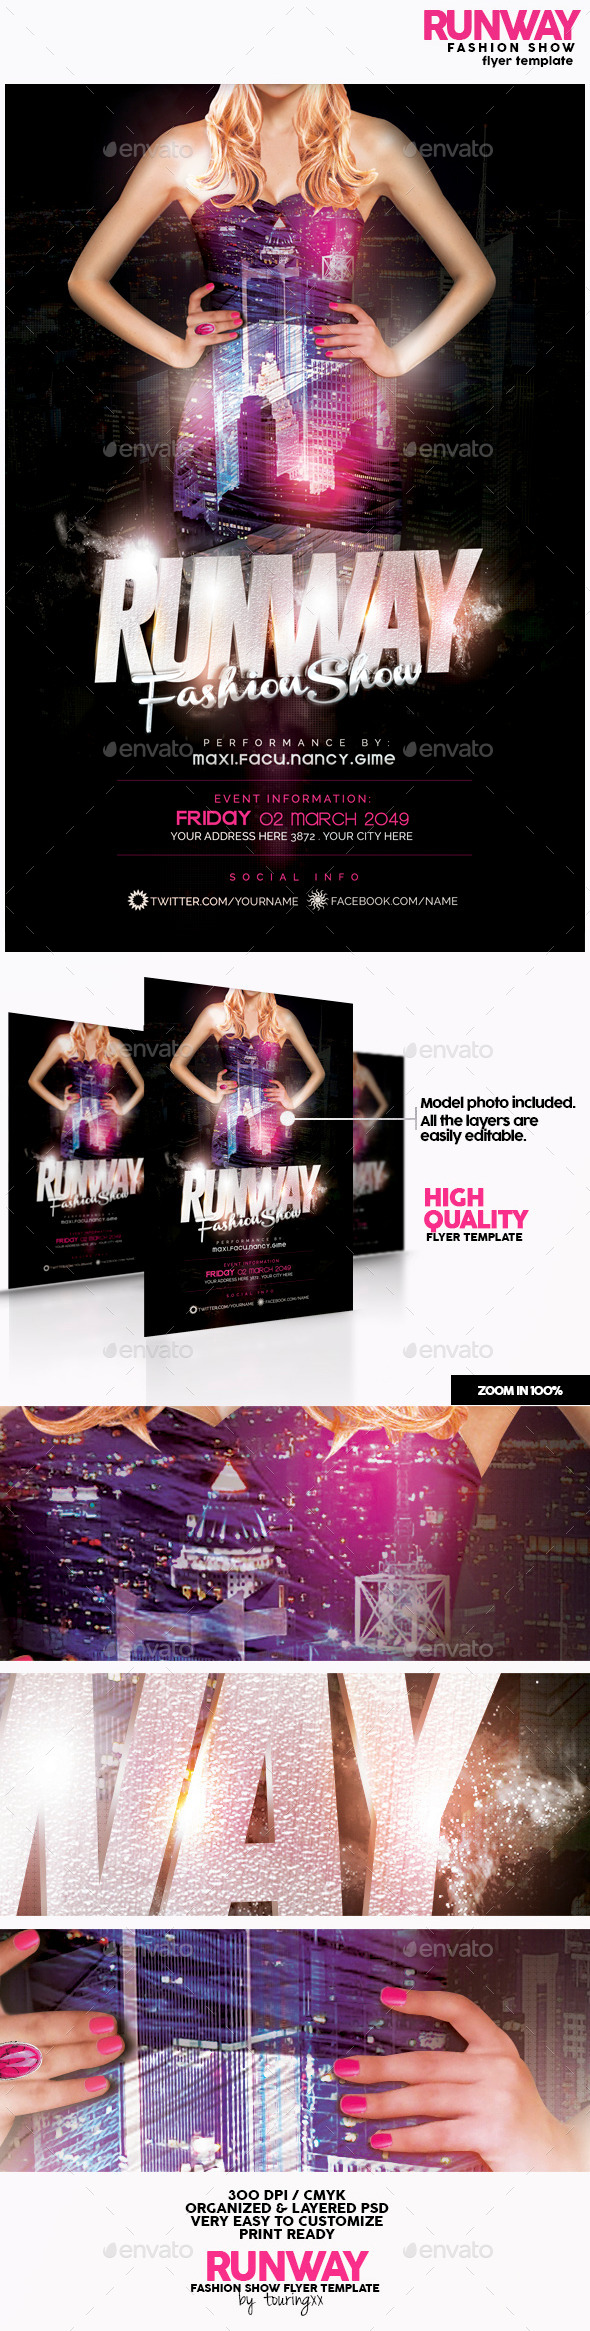 runway fashion show flyer template by touringxx graphicriver. Black Bedroom Furniture Sets. Home Design Ideas